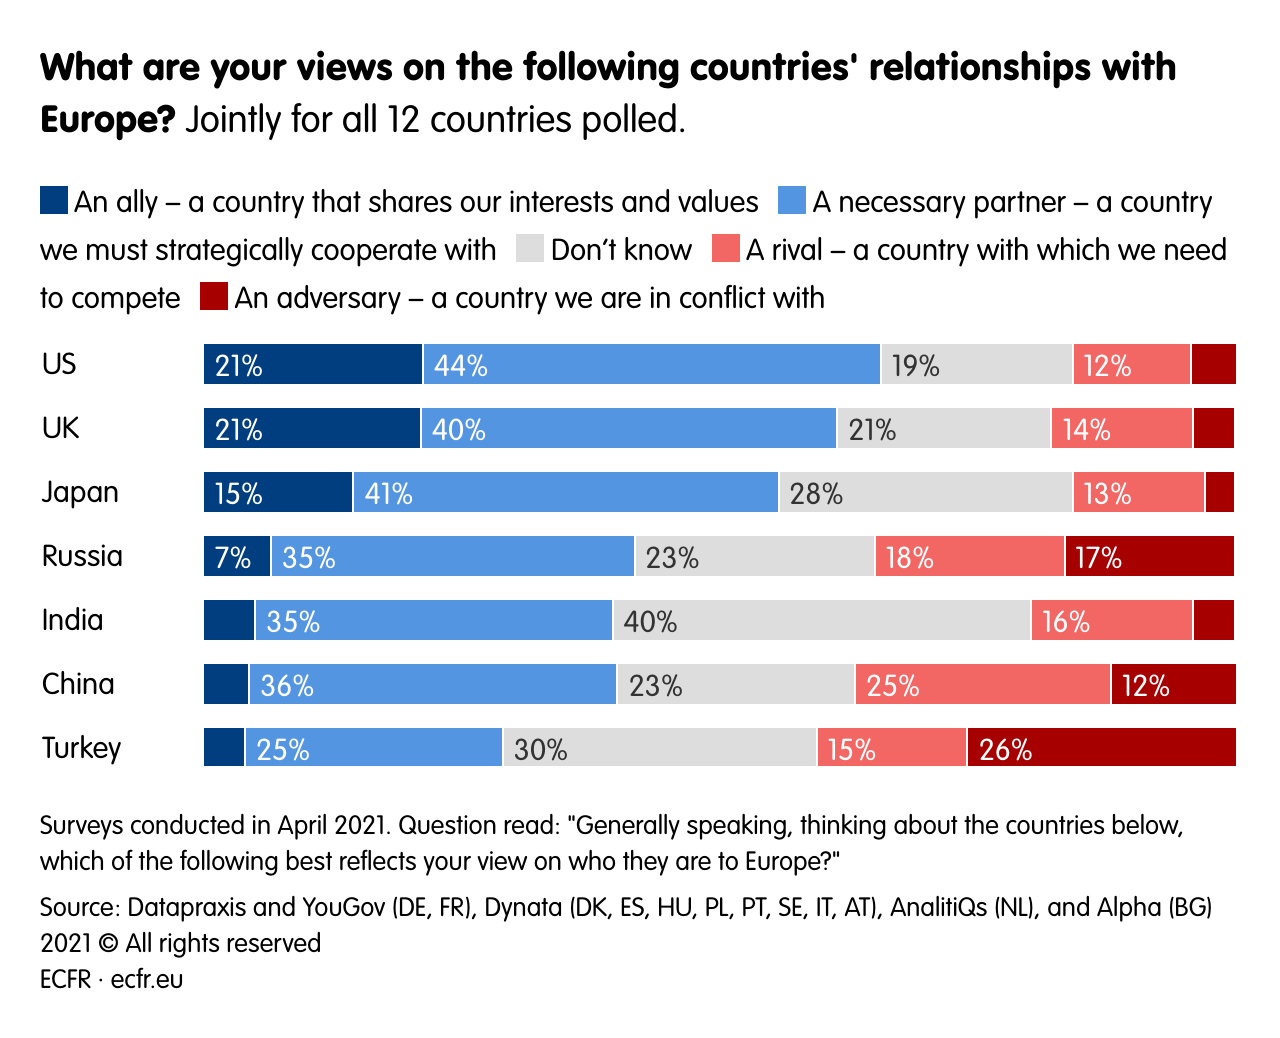 What are your views on the following countries' relationships with Europe?